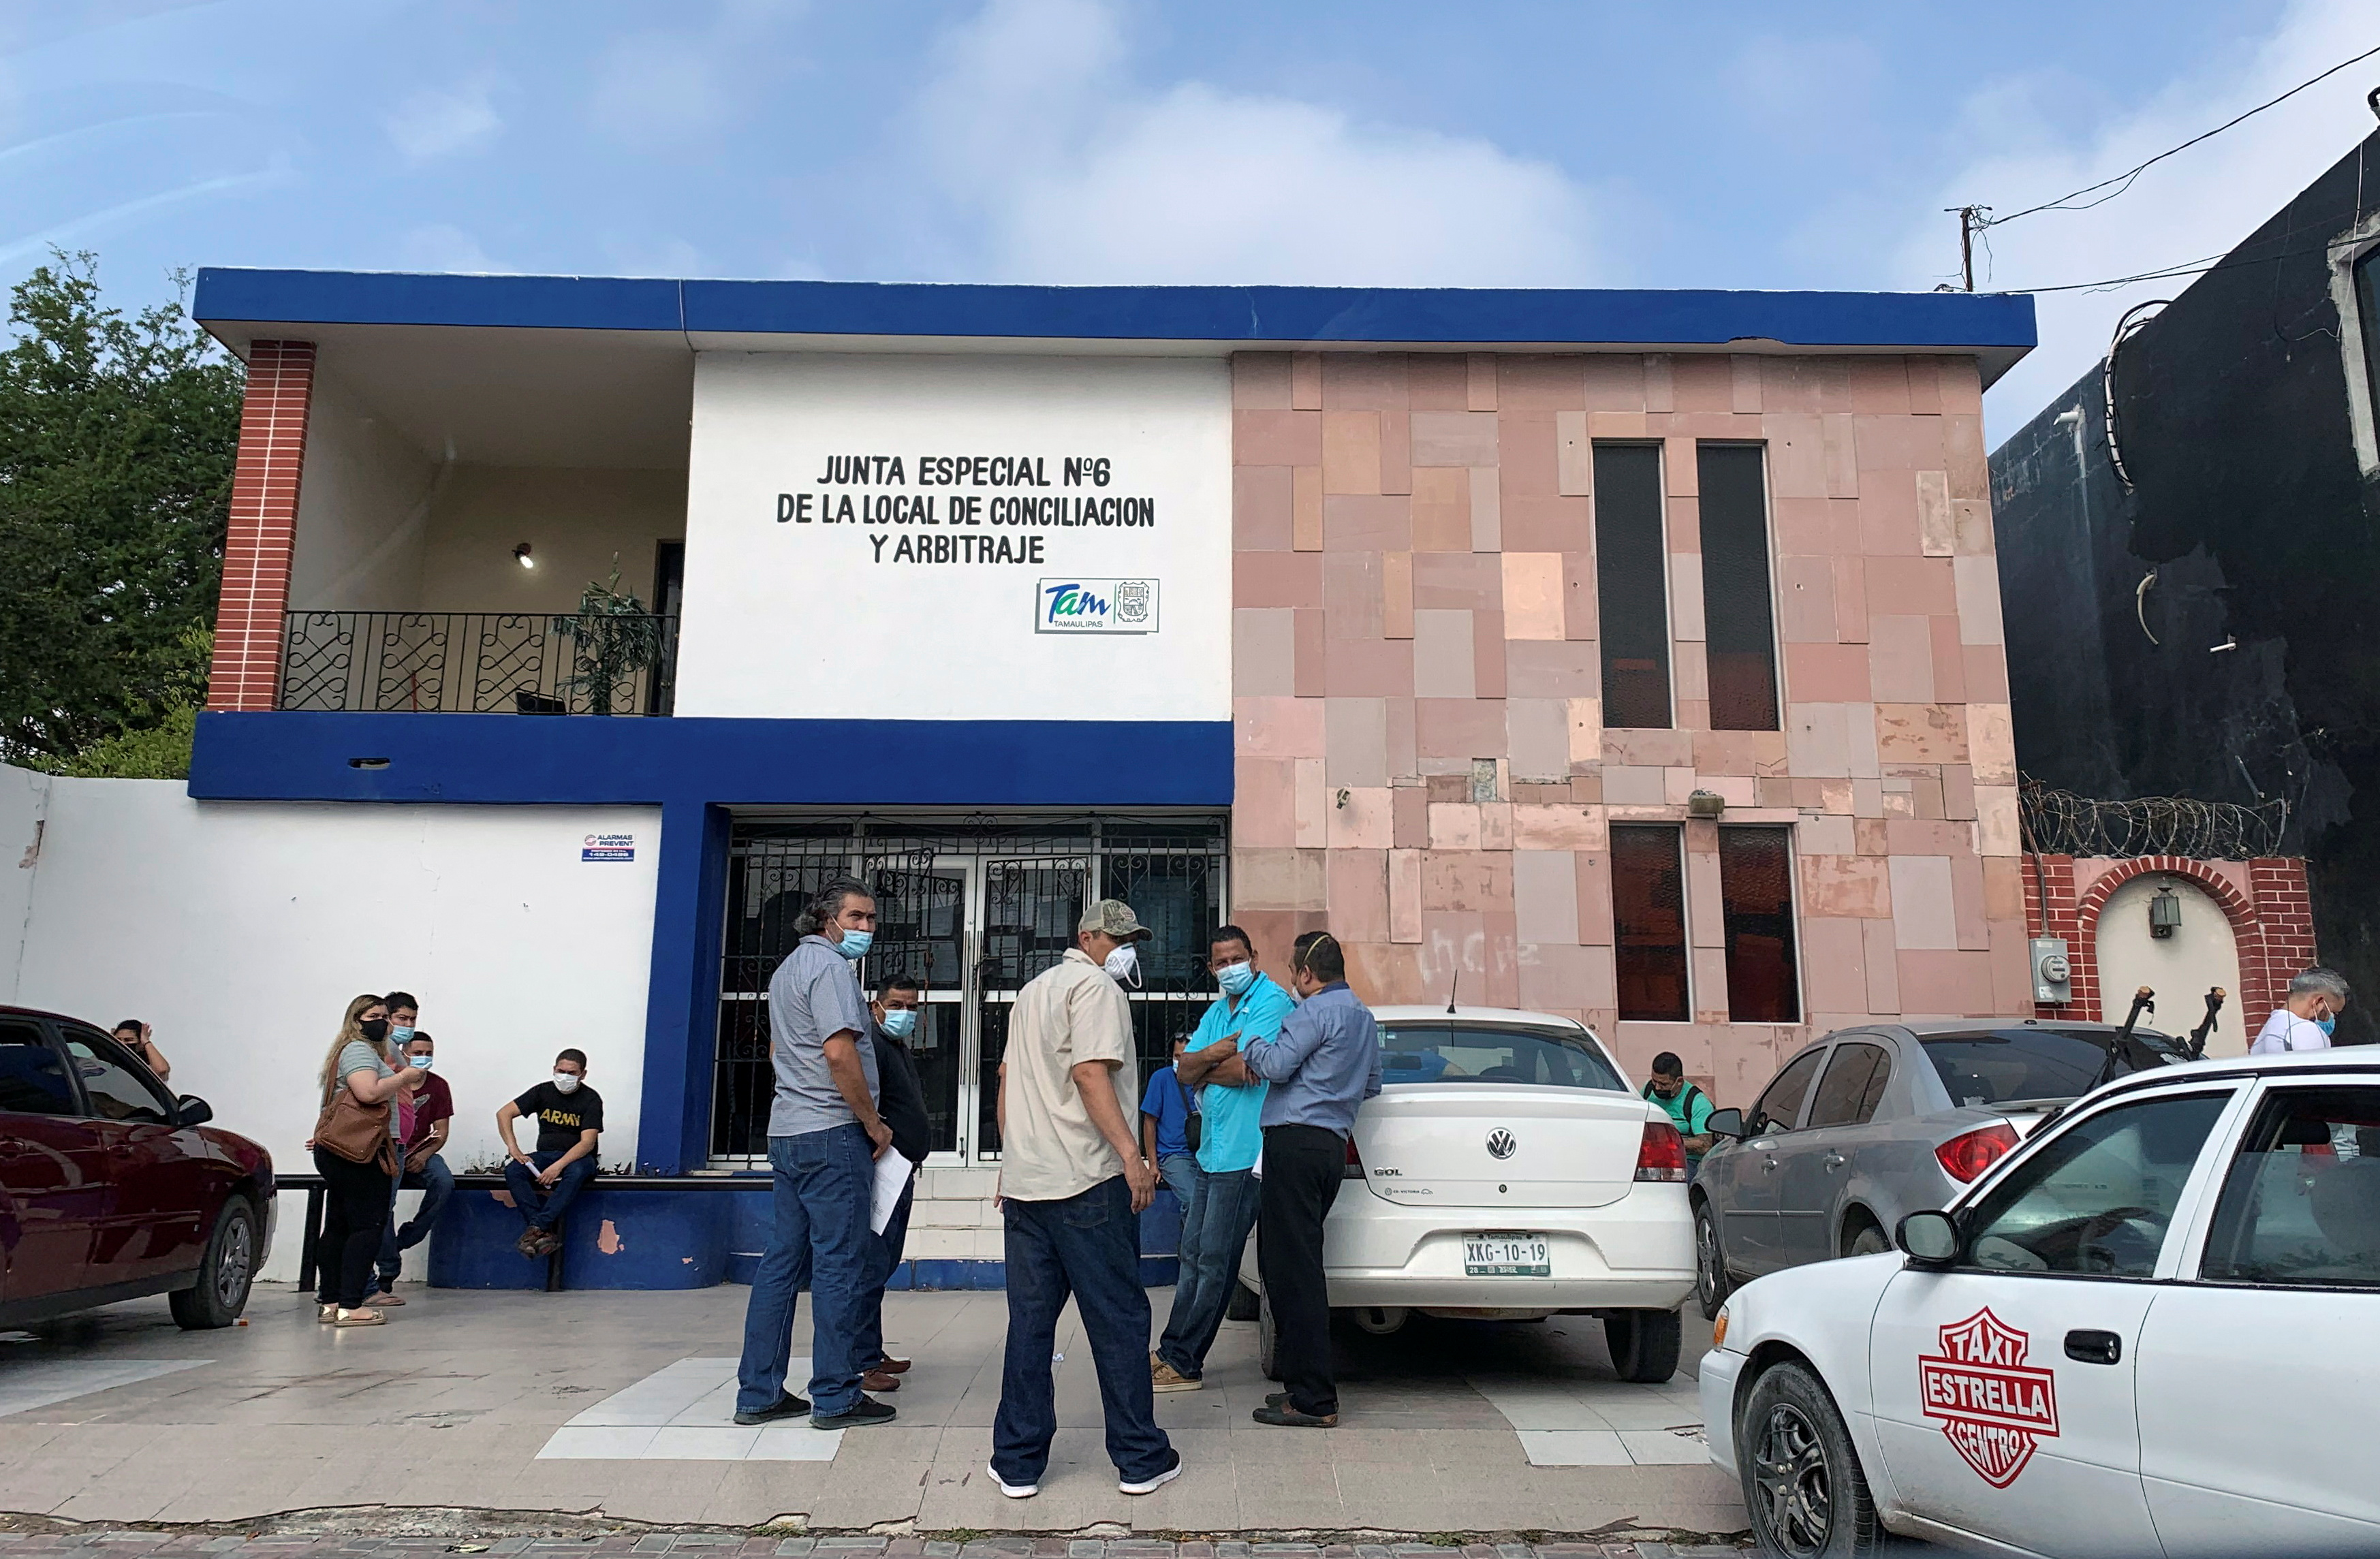 Workers aiming to resolve labor disputes wait outside a Conciliation and Arbitration Board, in Matamoros, Mexico January 26, 2021. REUTERS/Daina Solomon